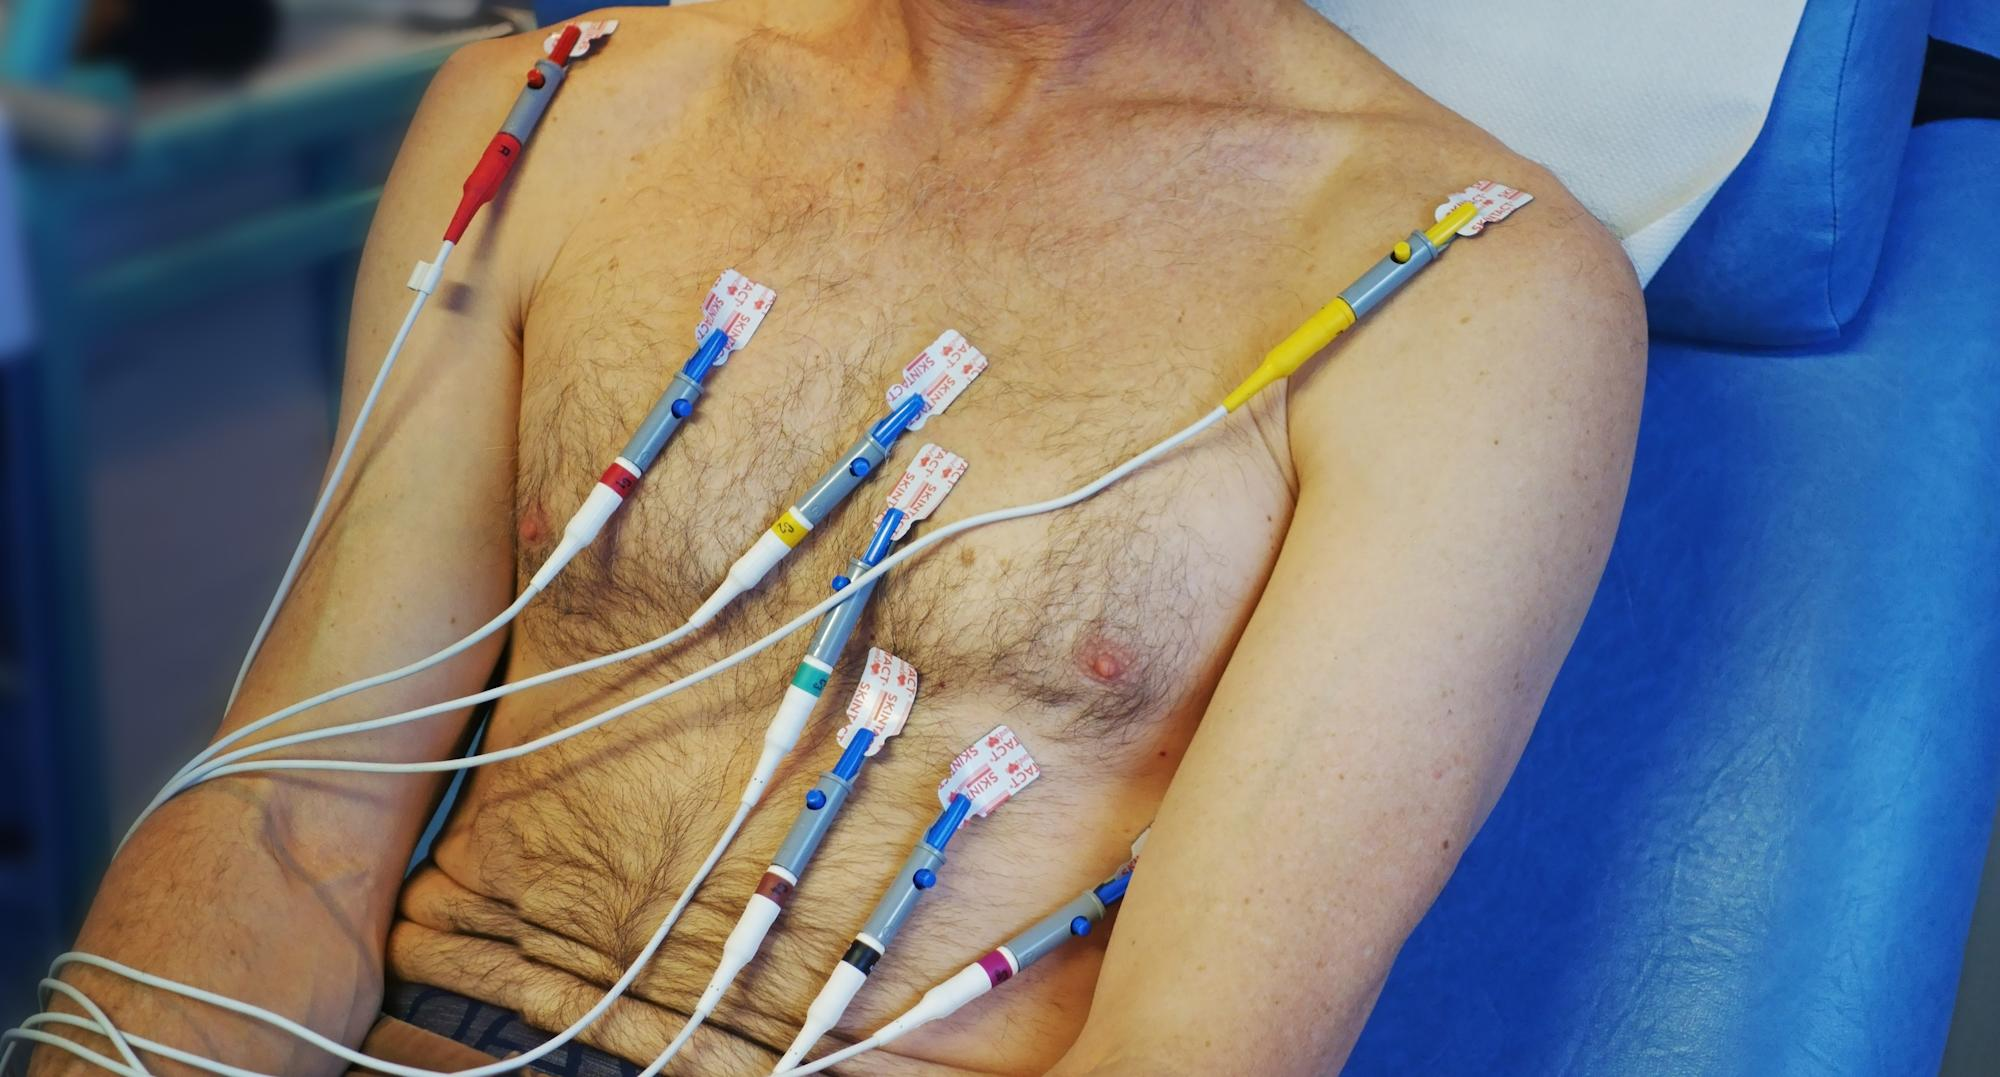 Creepy reason why this man suffered a 'heart attack'; no, he did not have heart disease